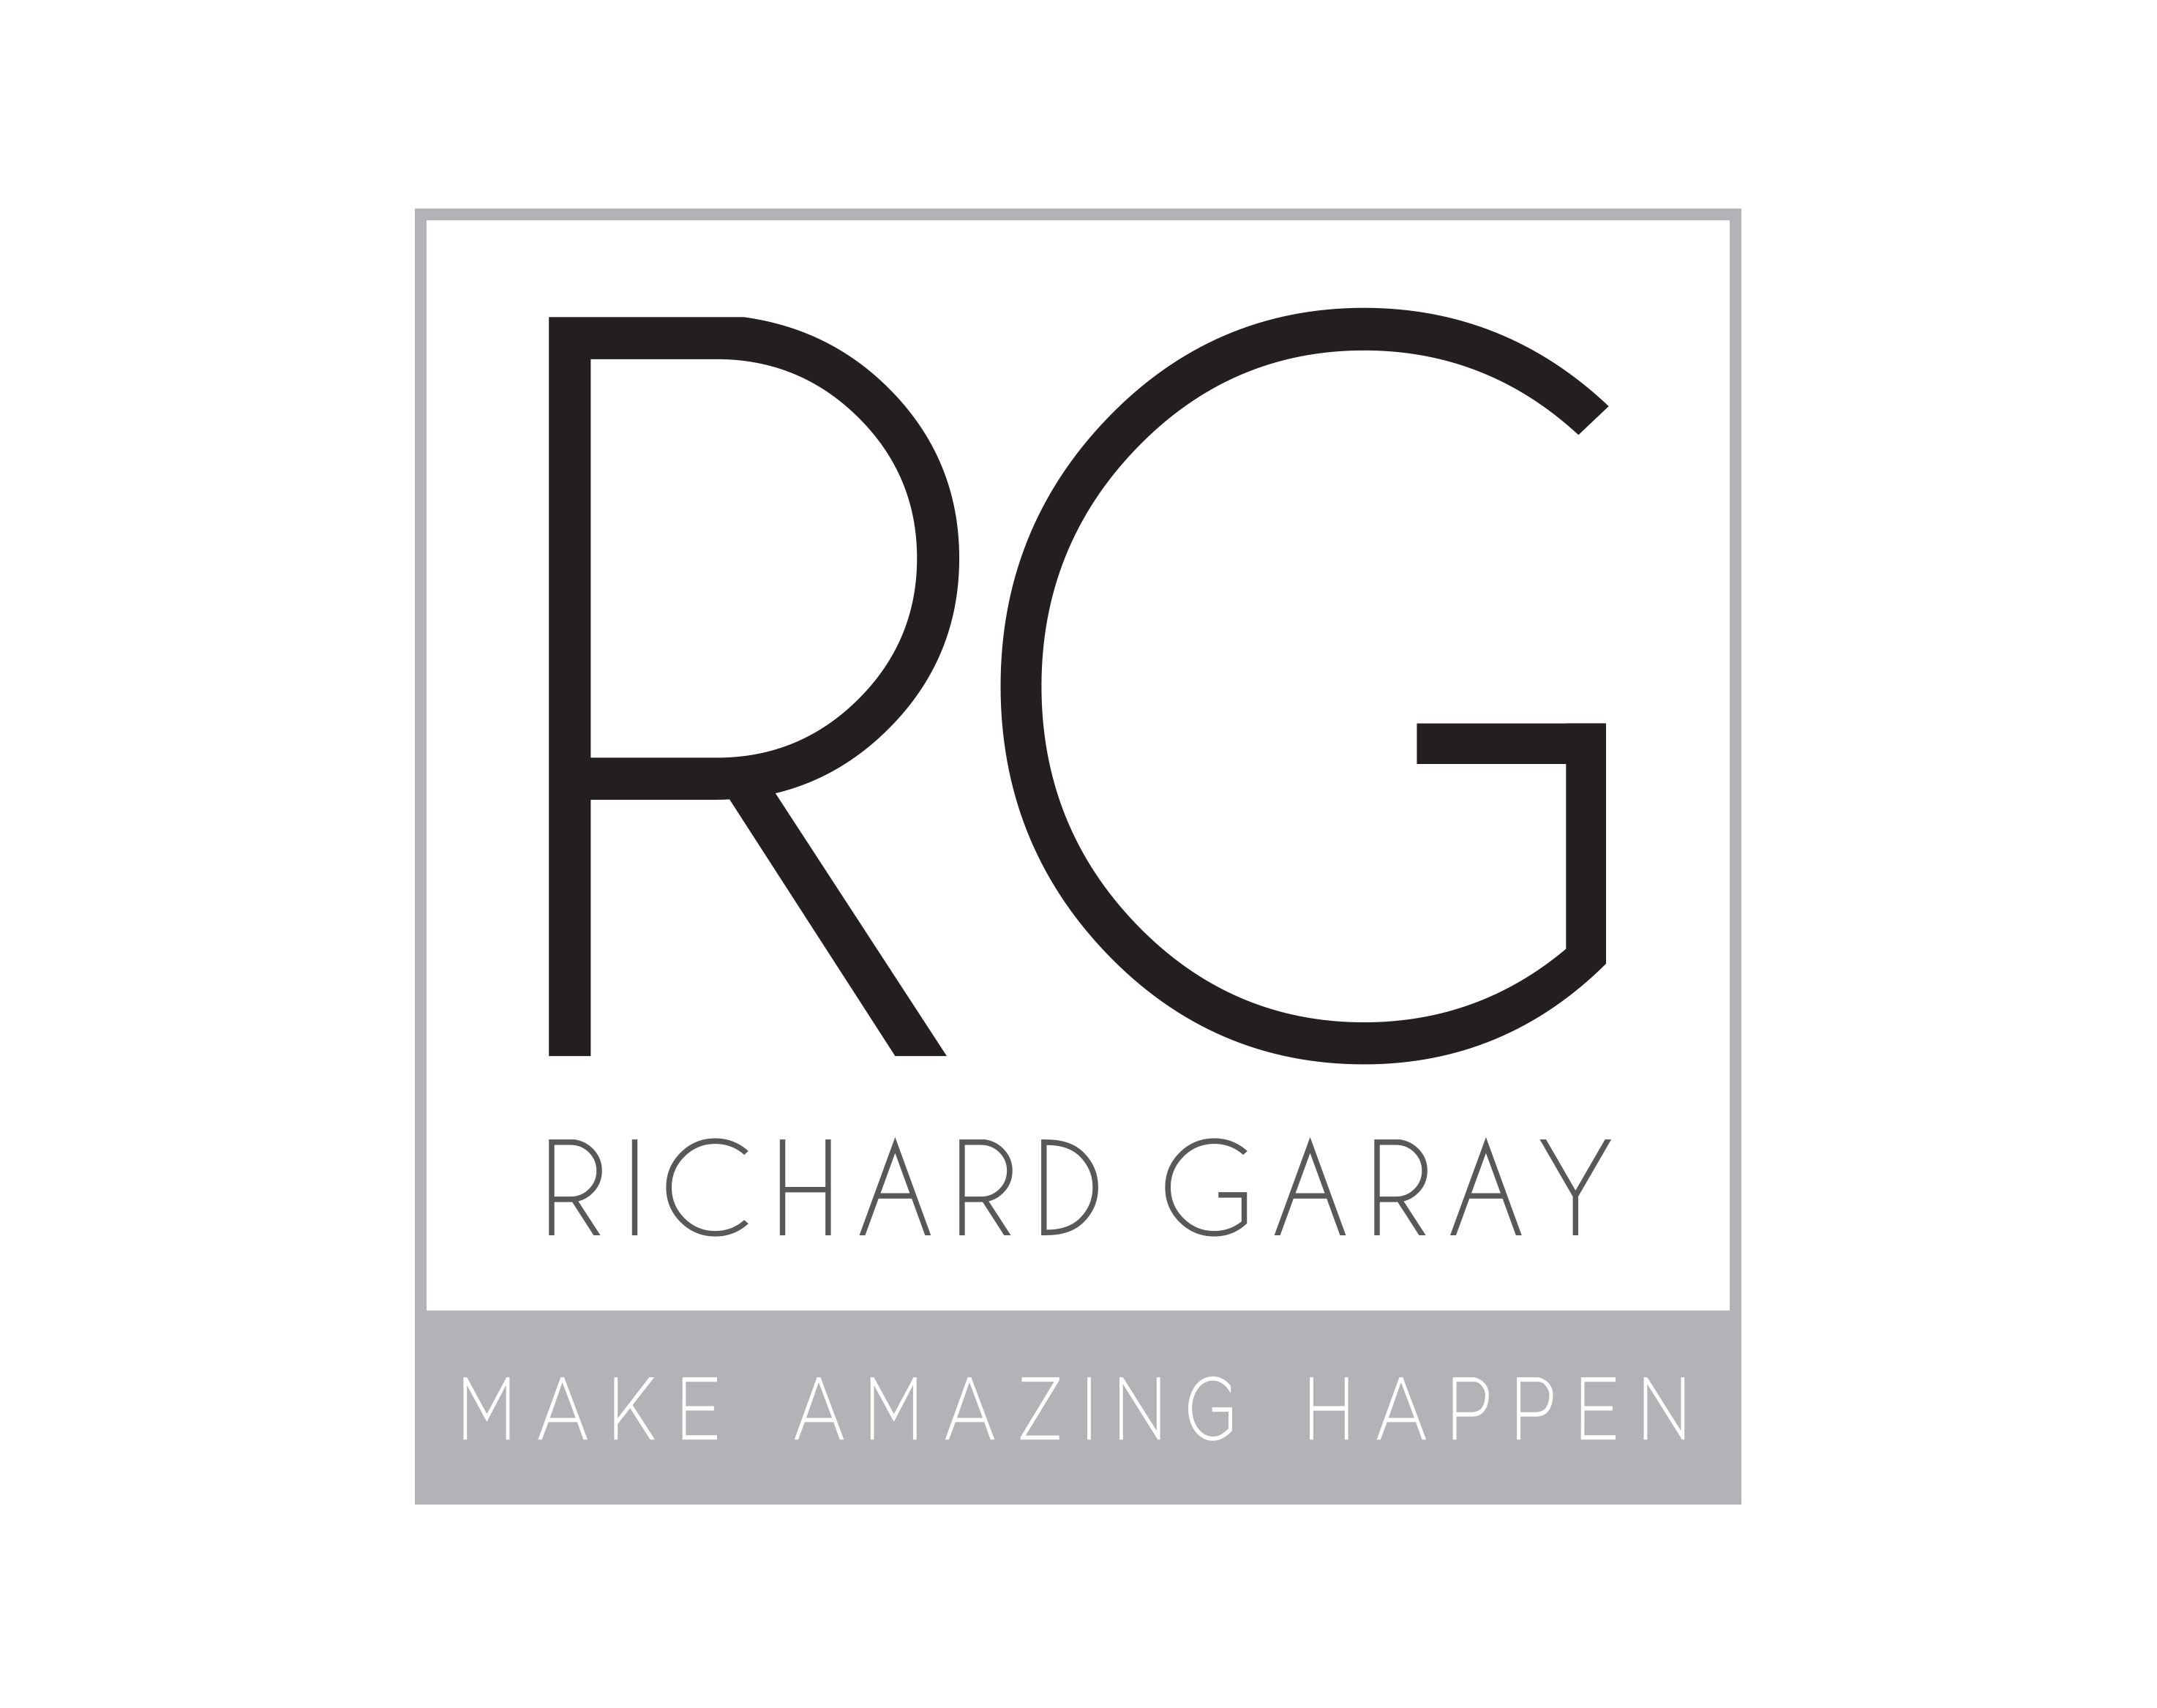 Richard Garay logo